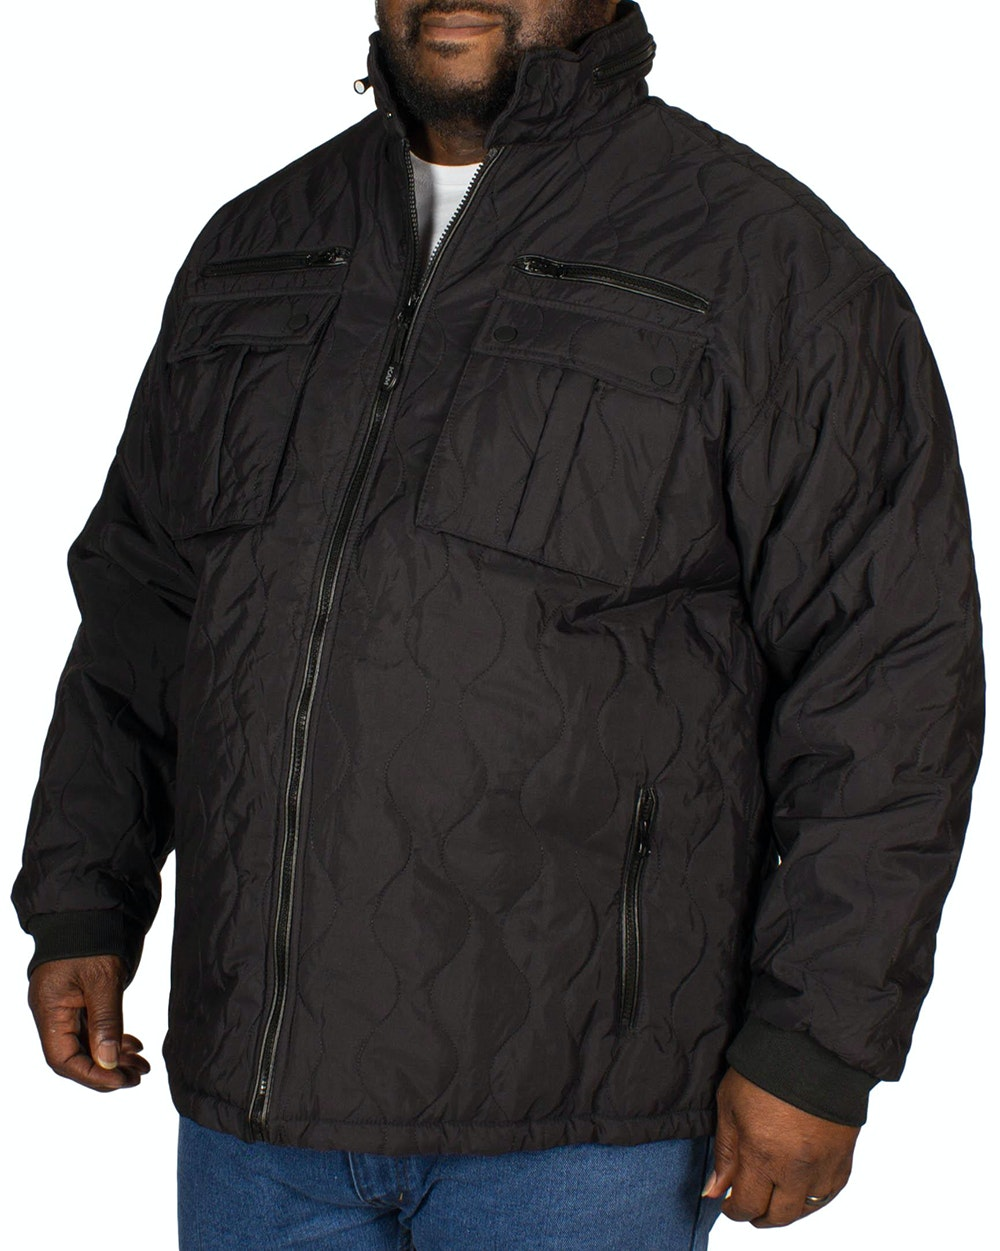 KAM Quilted Zipped Jacket Black